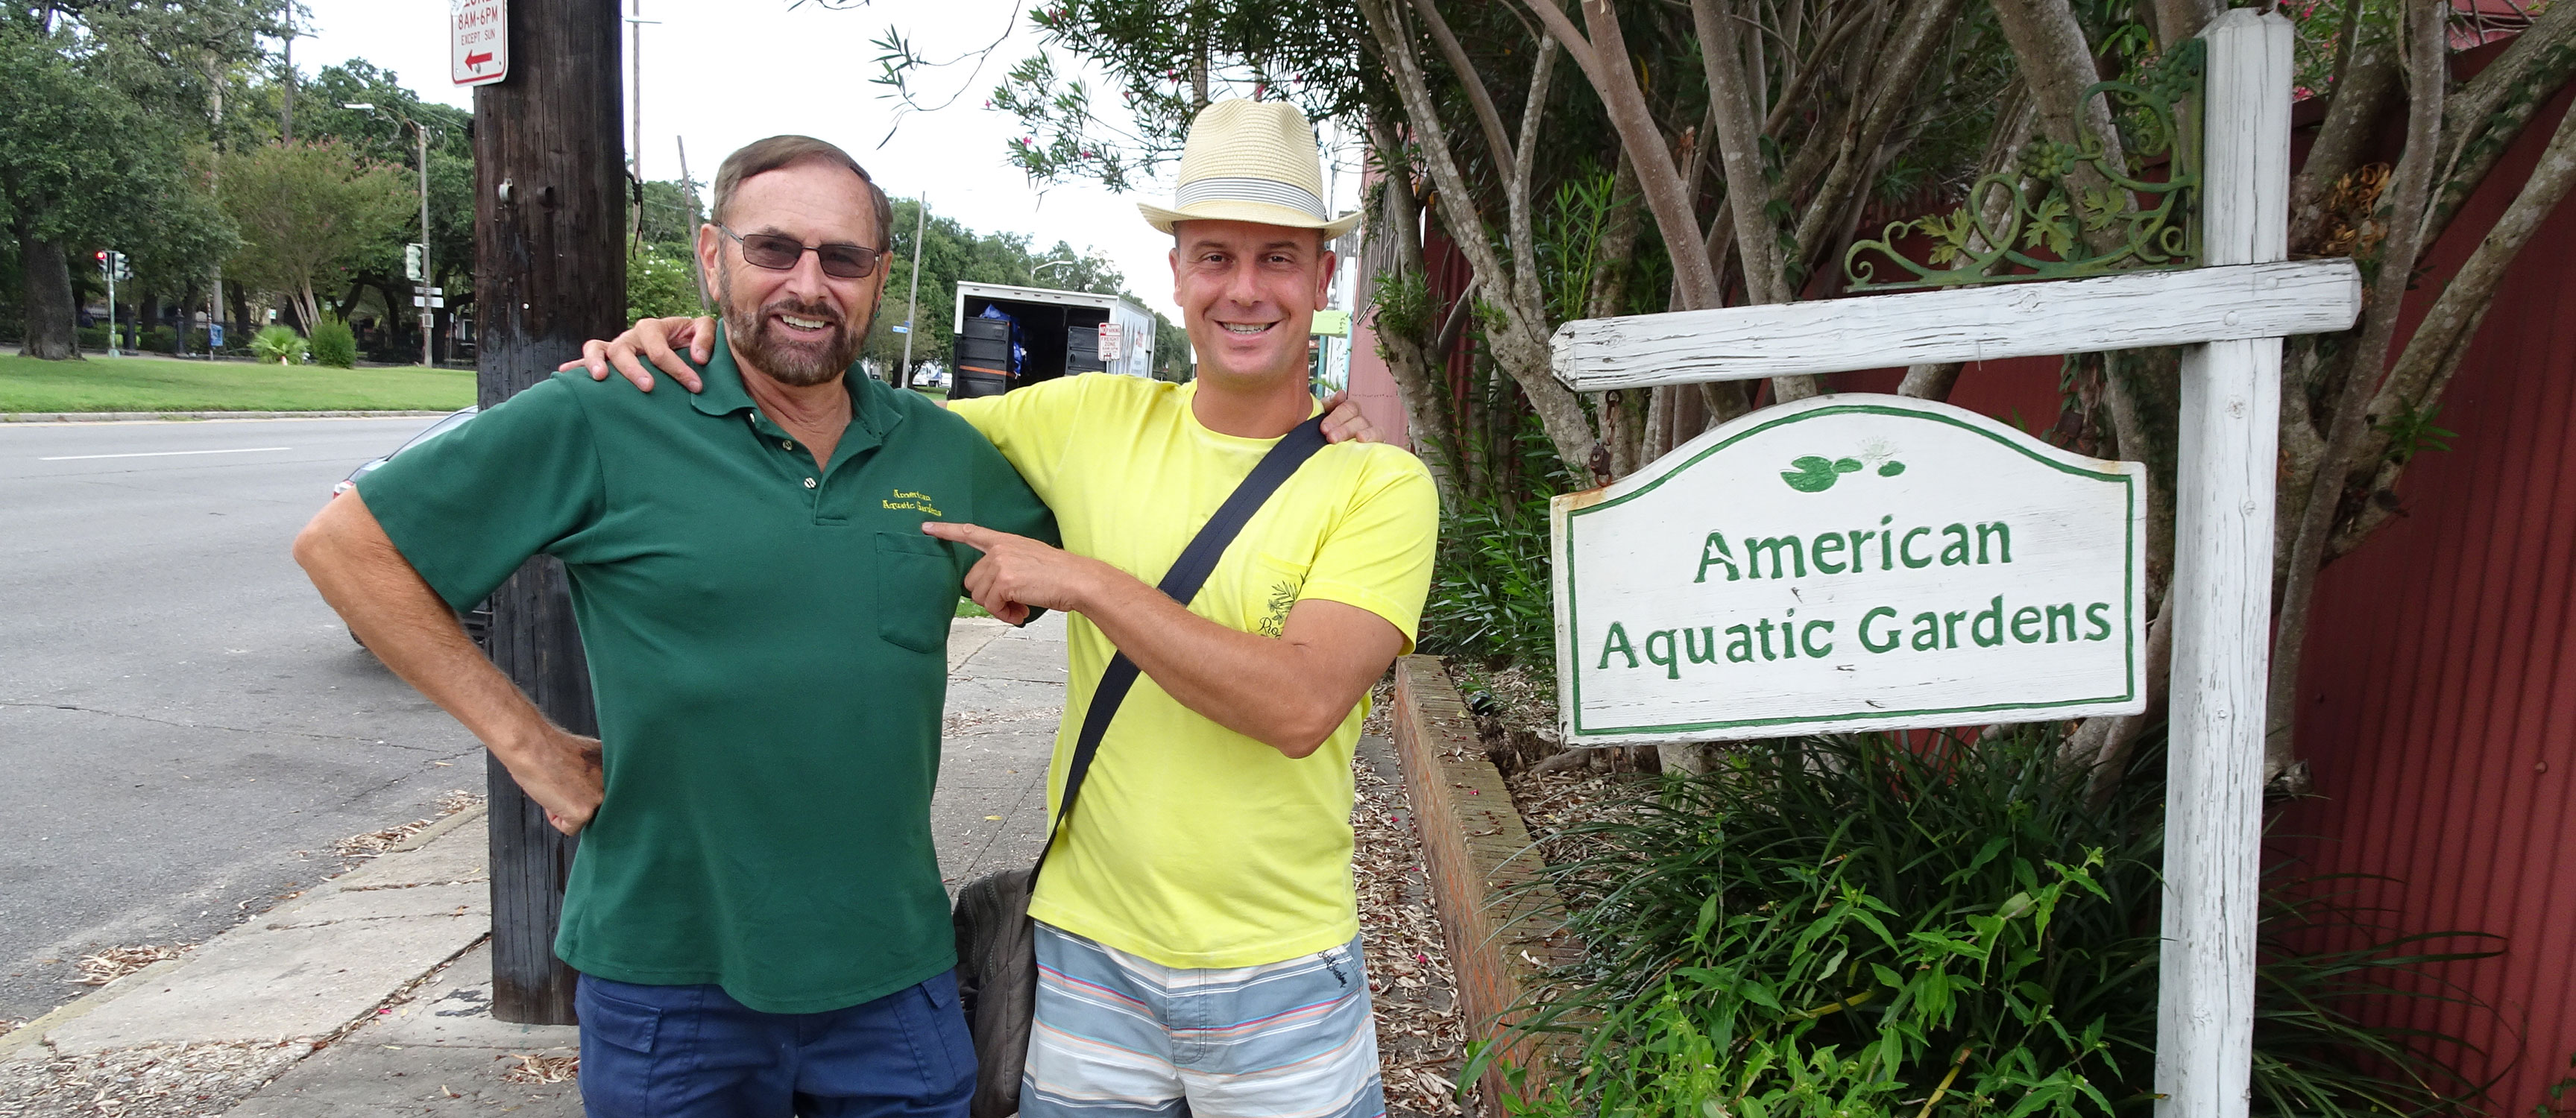 Rich e Gianluca all'American Aquatic Garden